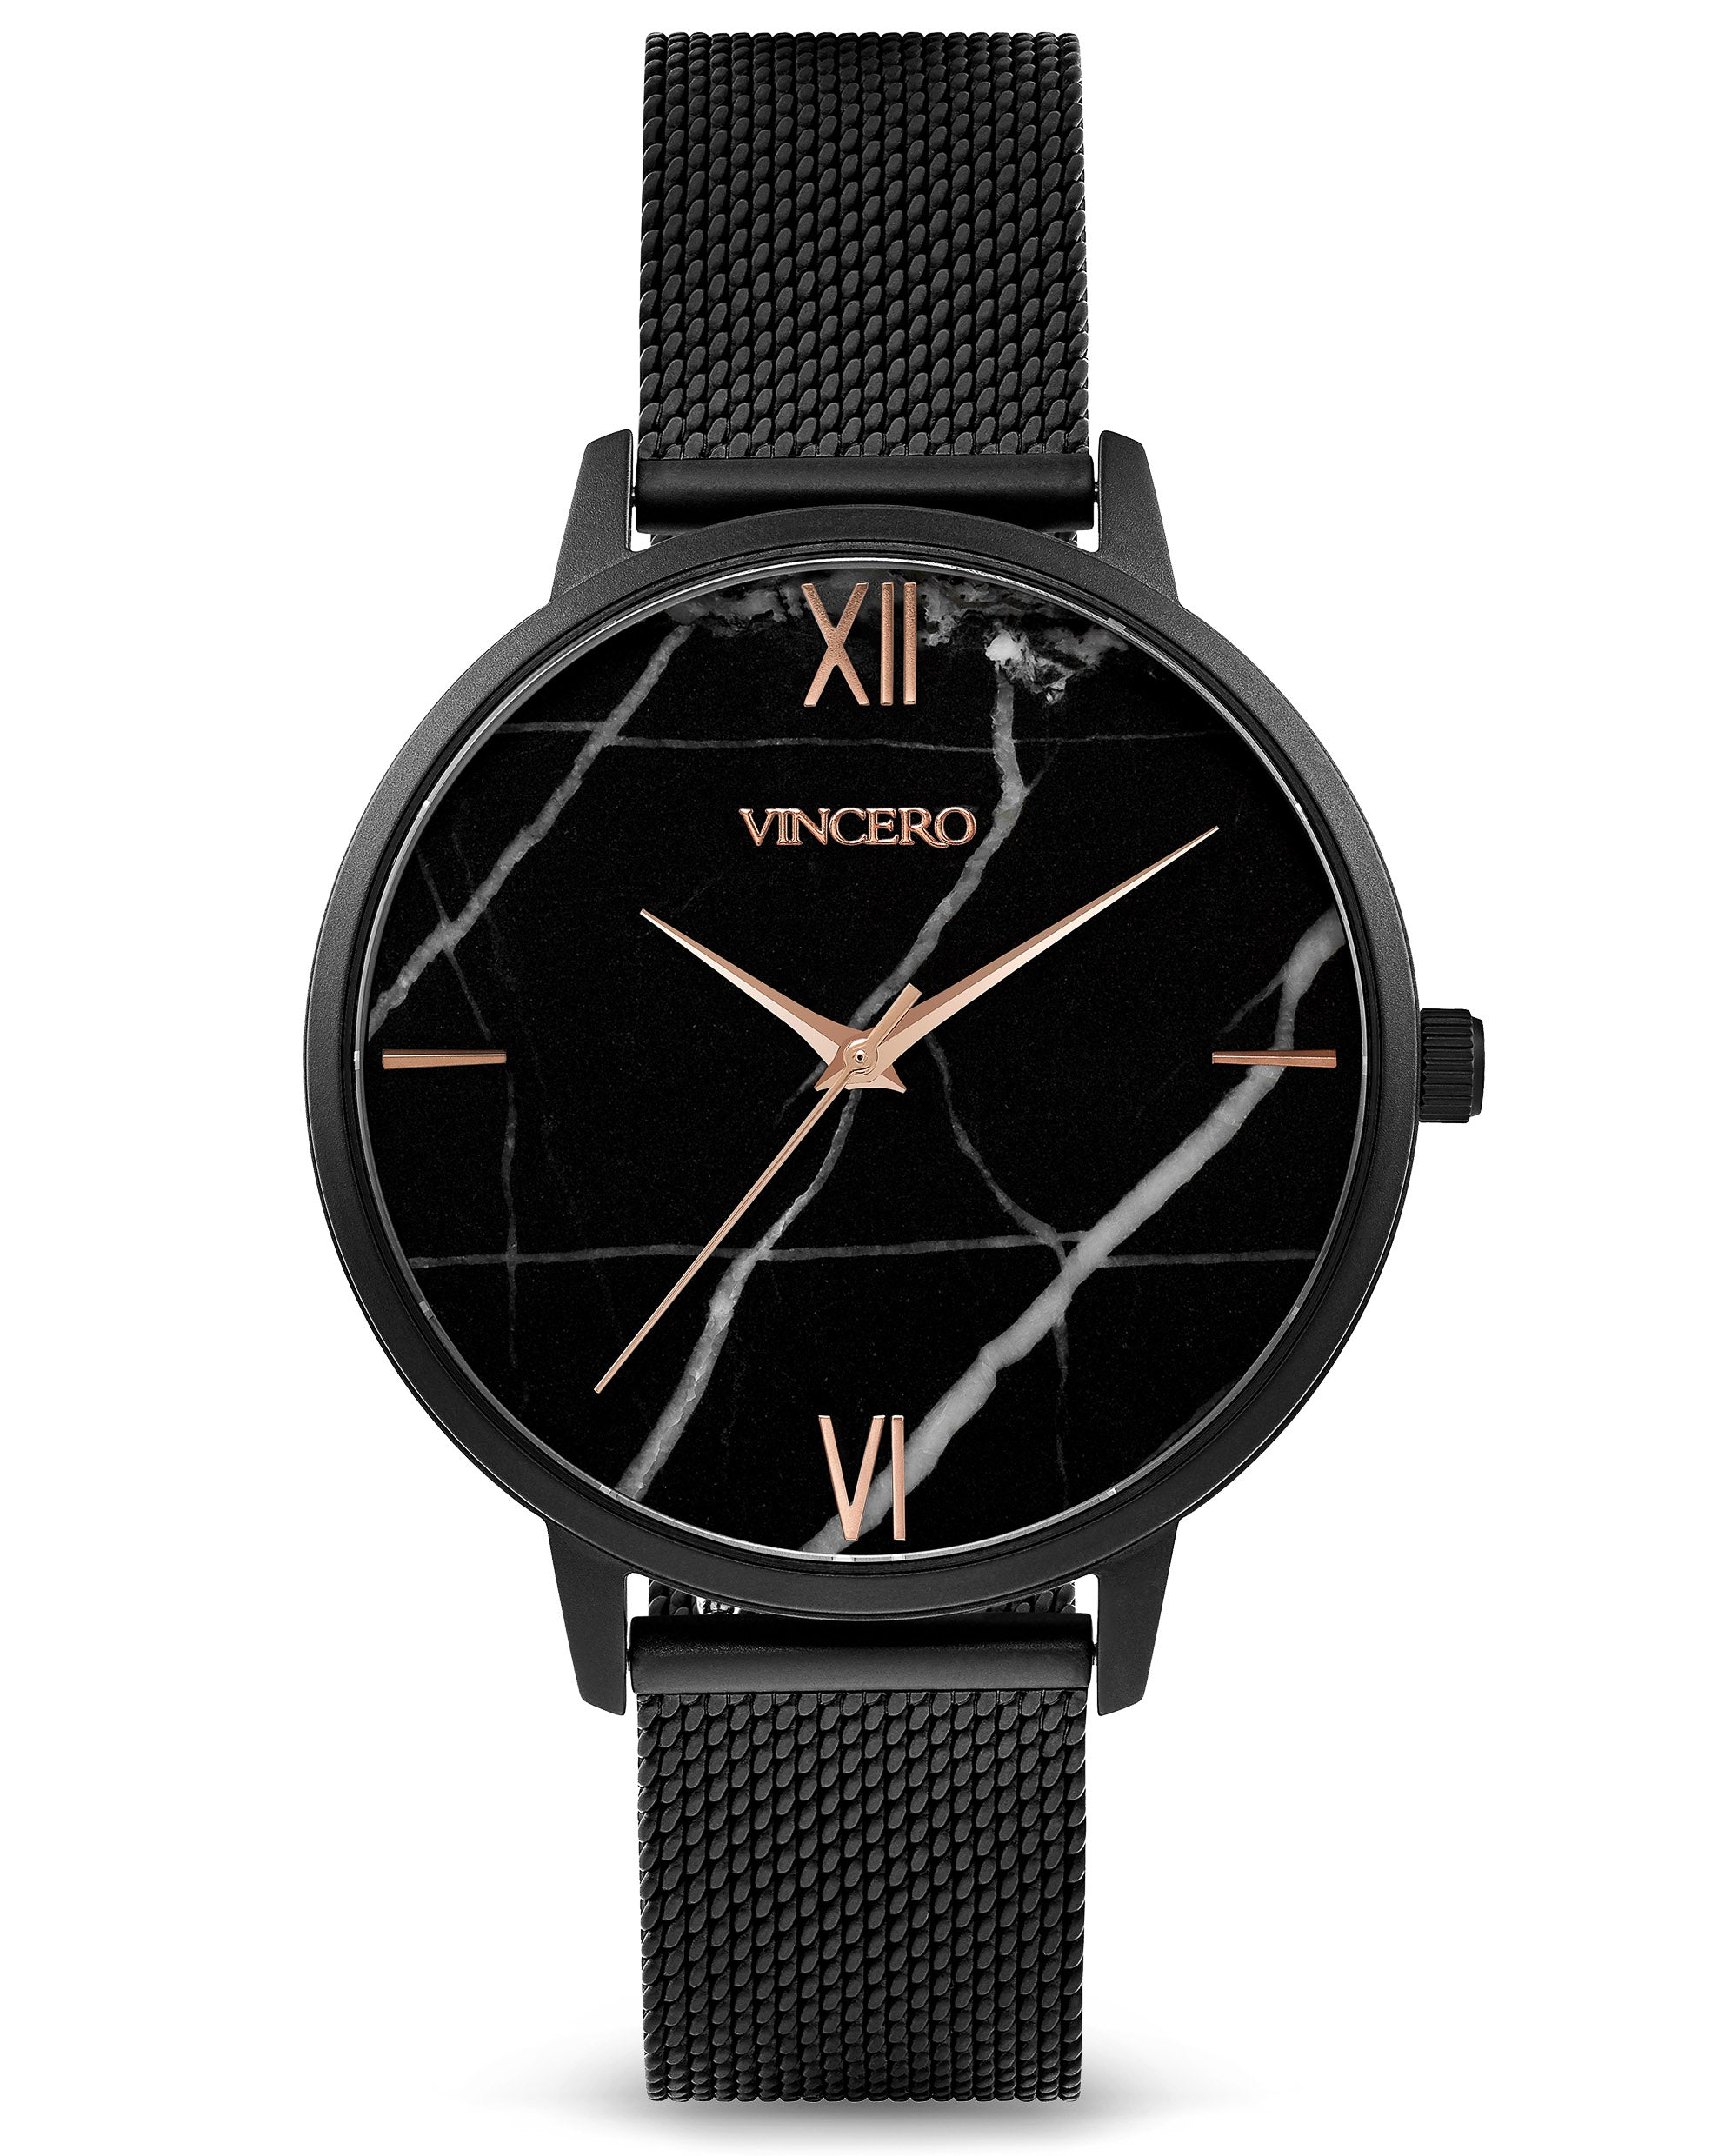 Black 316L Stainless Steel Mesh Strap Black Italian Marble Watch Face Black Case Clasp Rose Gold Accents